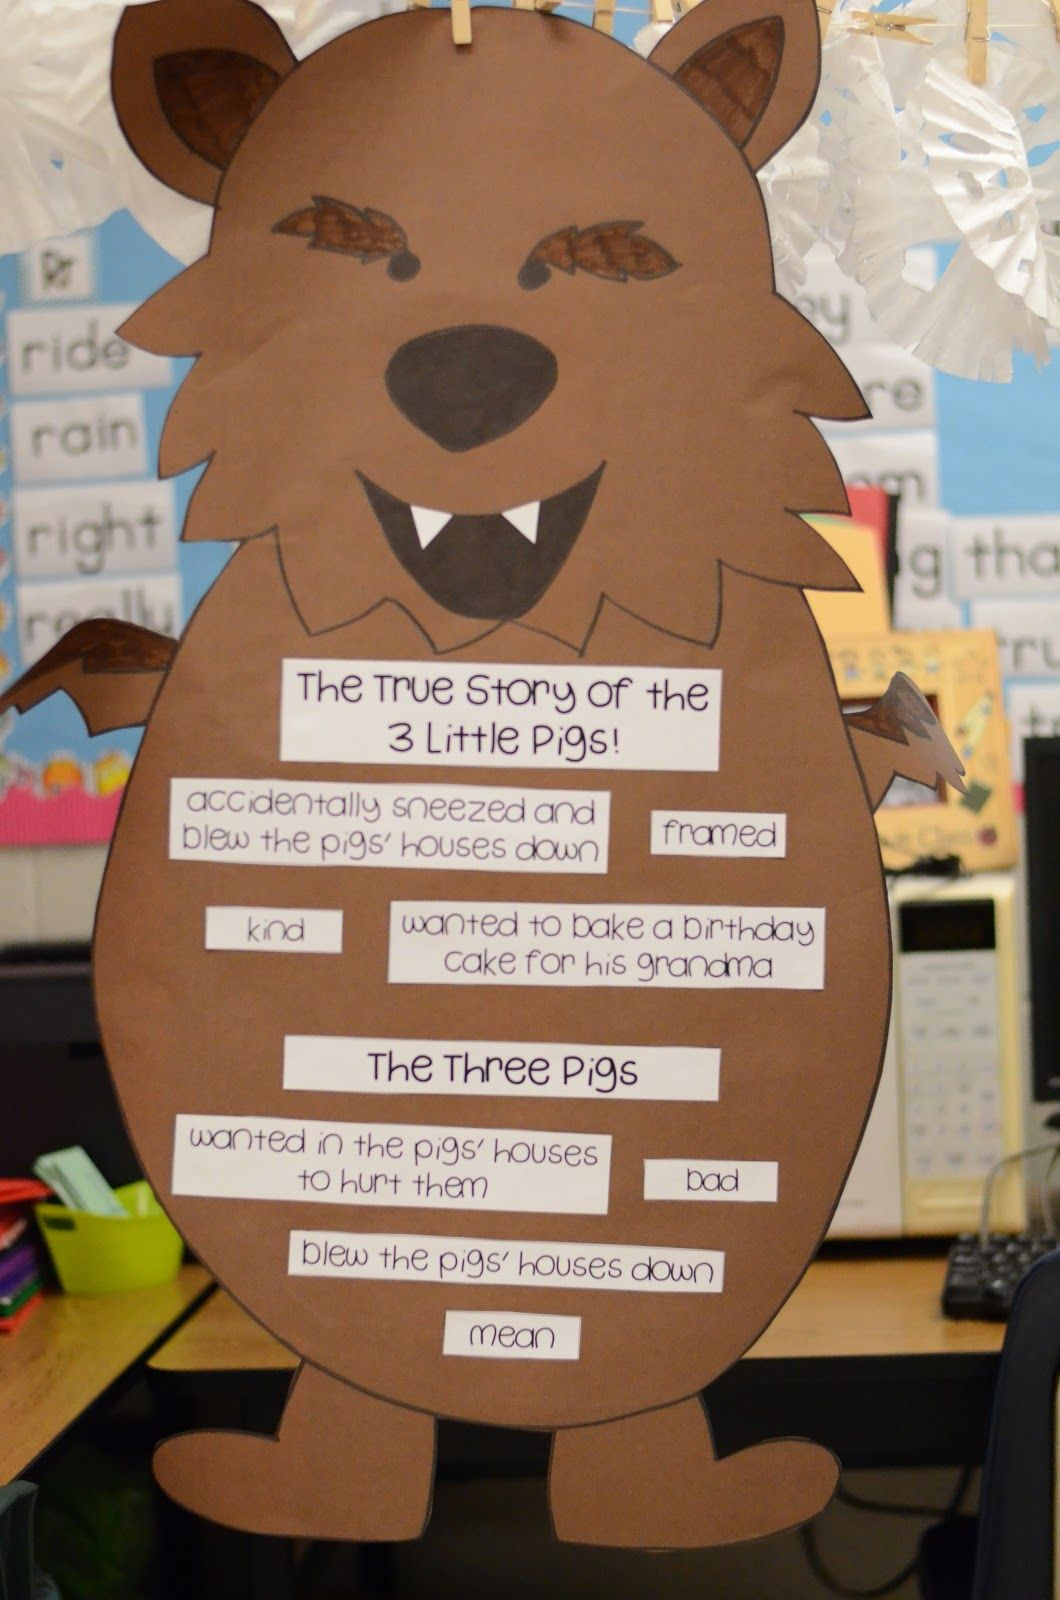 How the character of the wolf was portrayed differently in The True Story of the 3 Little Pigs and The Three Pigs